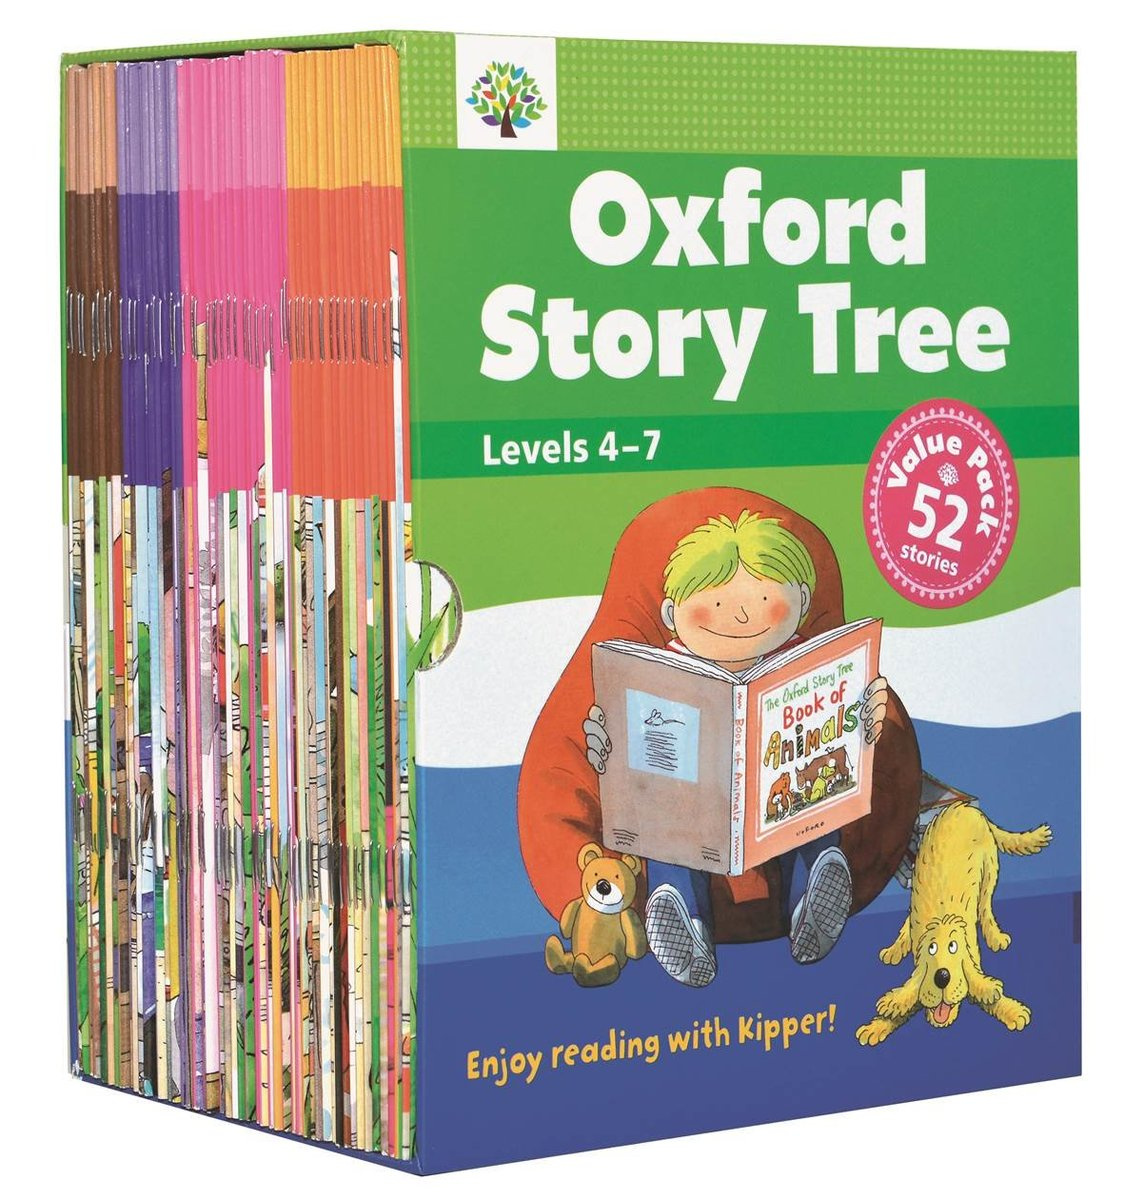 Oxford Story Tree Value Pack 2 (Levels 4-7)|52 本故事書